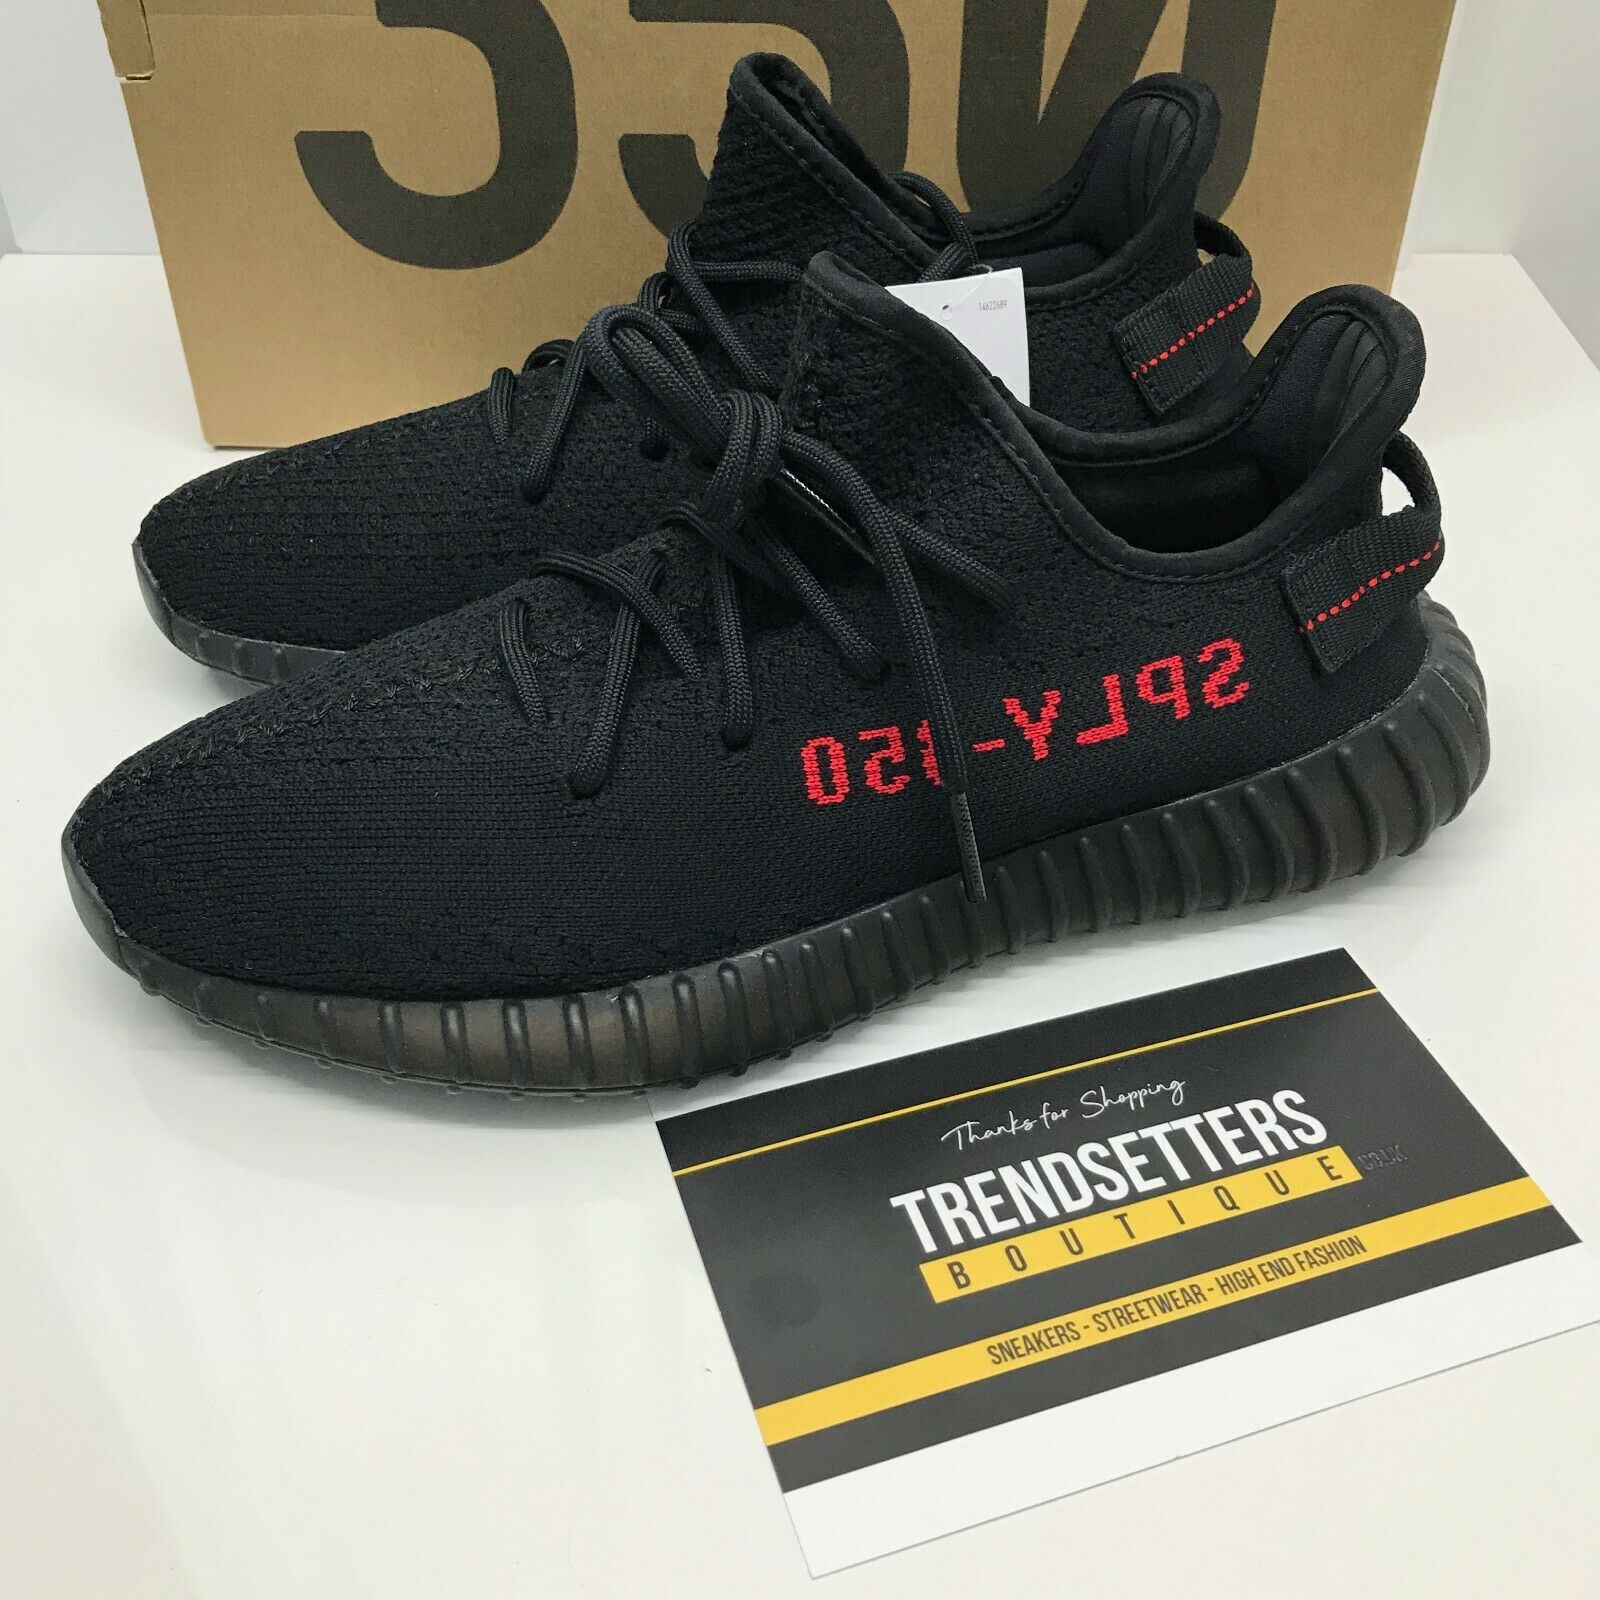 5ccb117453 ADIDAS YEEZY V2 BOOST BLACK BRED RED UK US 9 9.5 42.5 CP9652 MENS OG 350  8.5 nqfryy5274-Men's Athletic Shoes